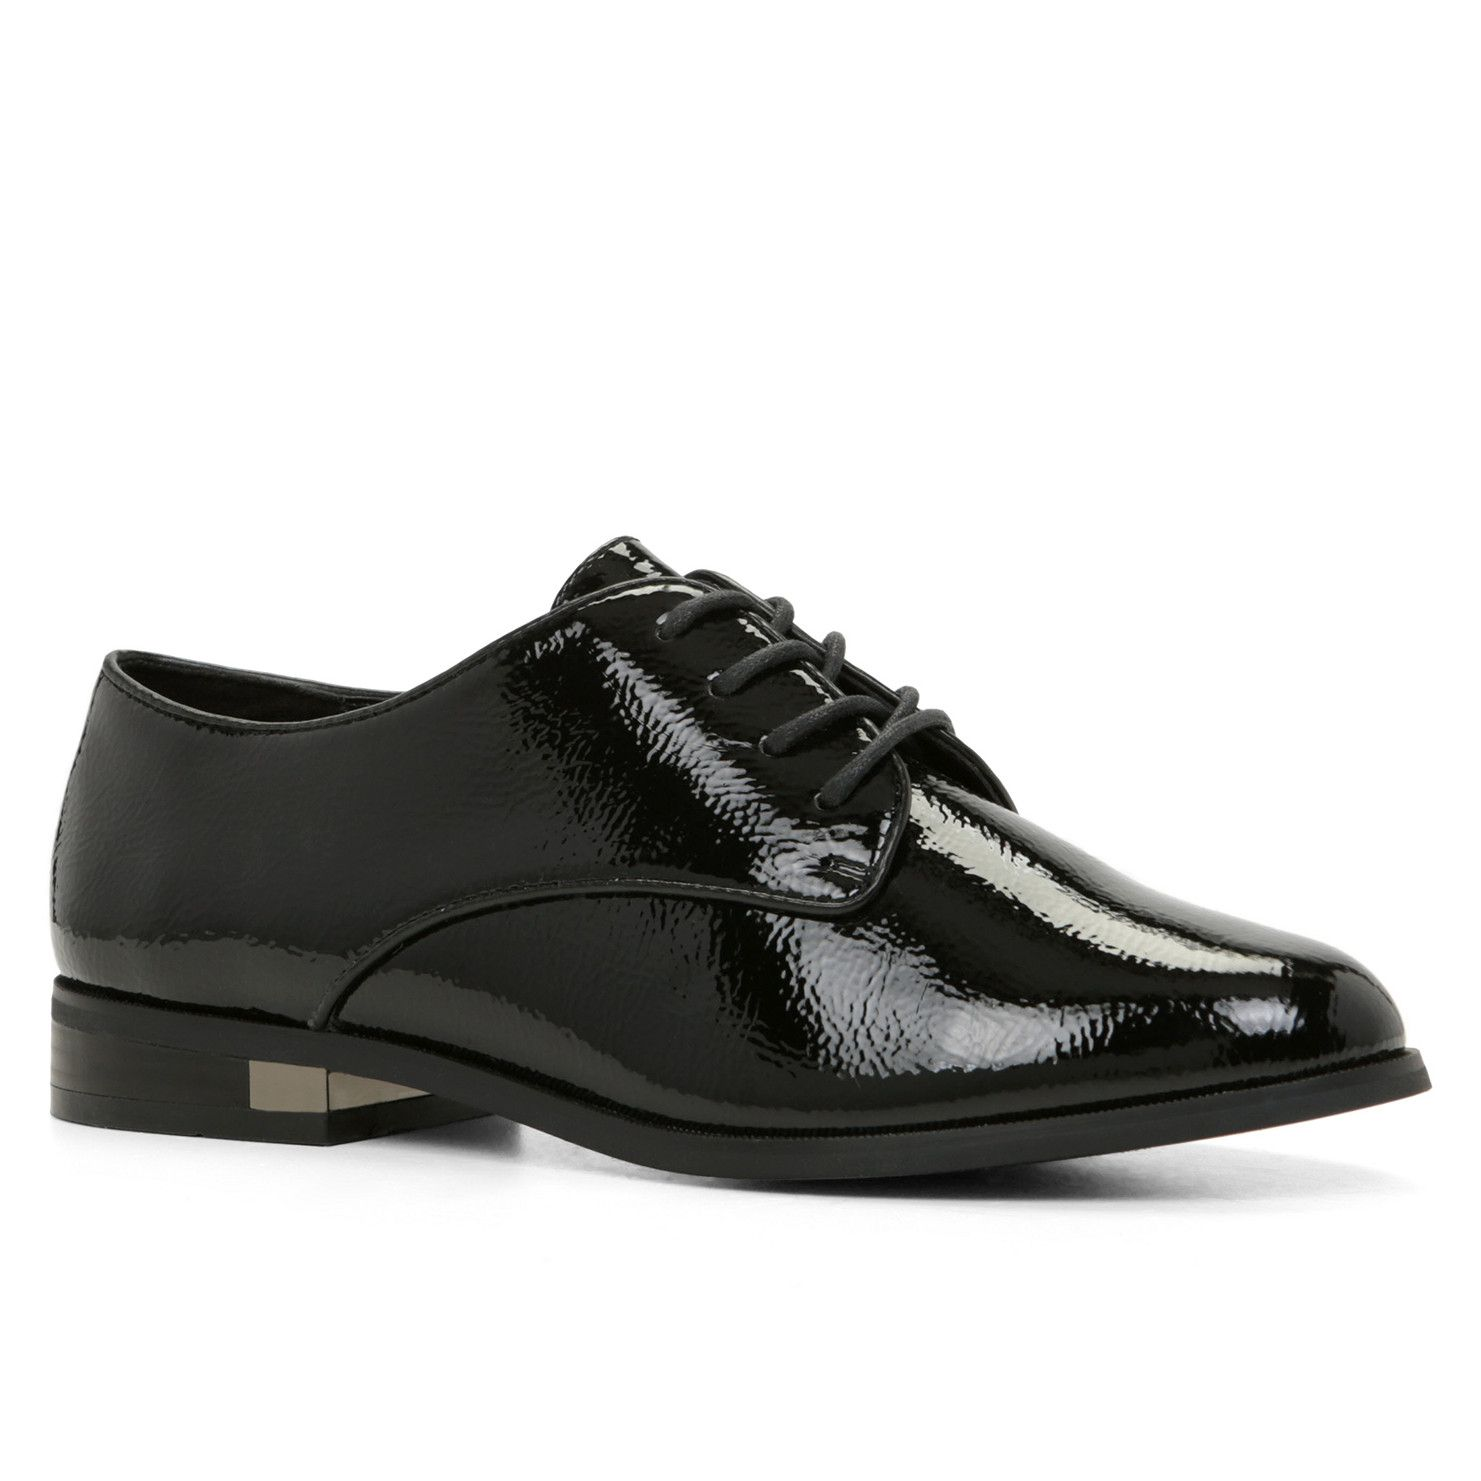 MARWEN Oxfords & Loafers | Women's Shoes |